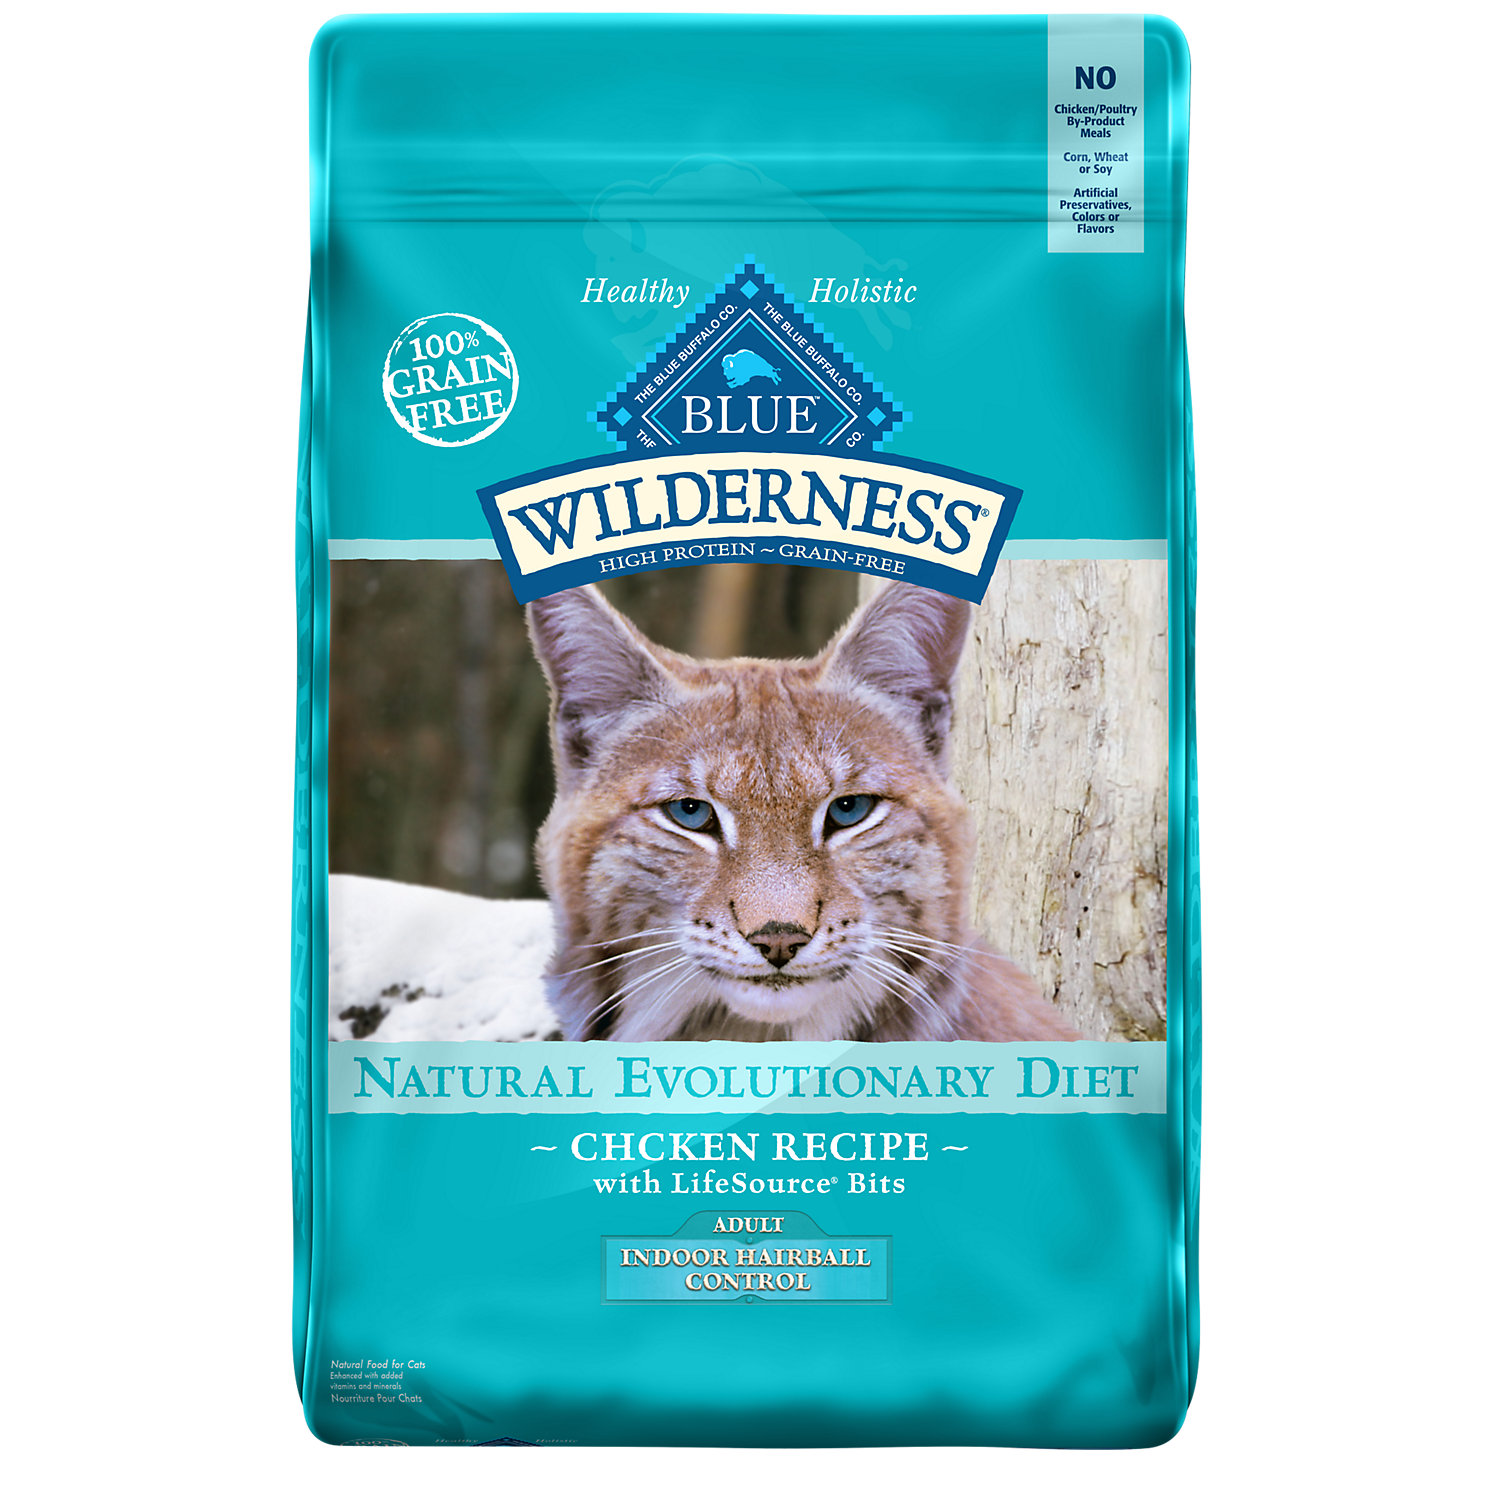 Blue Buffalo Wilderness Indoor Hairball Control Chicken Adult Dry Cat Food 11 Lbs.